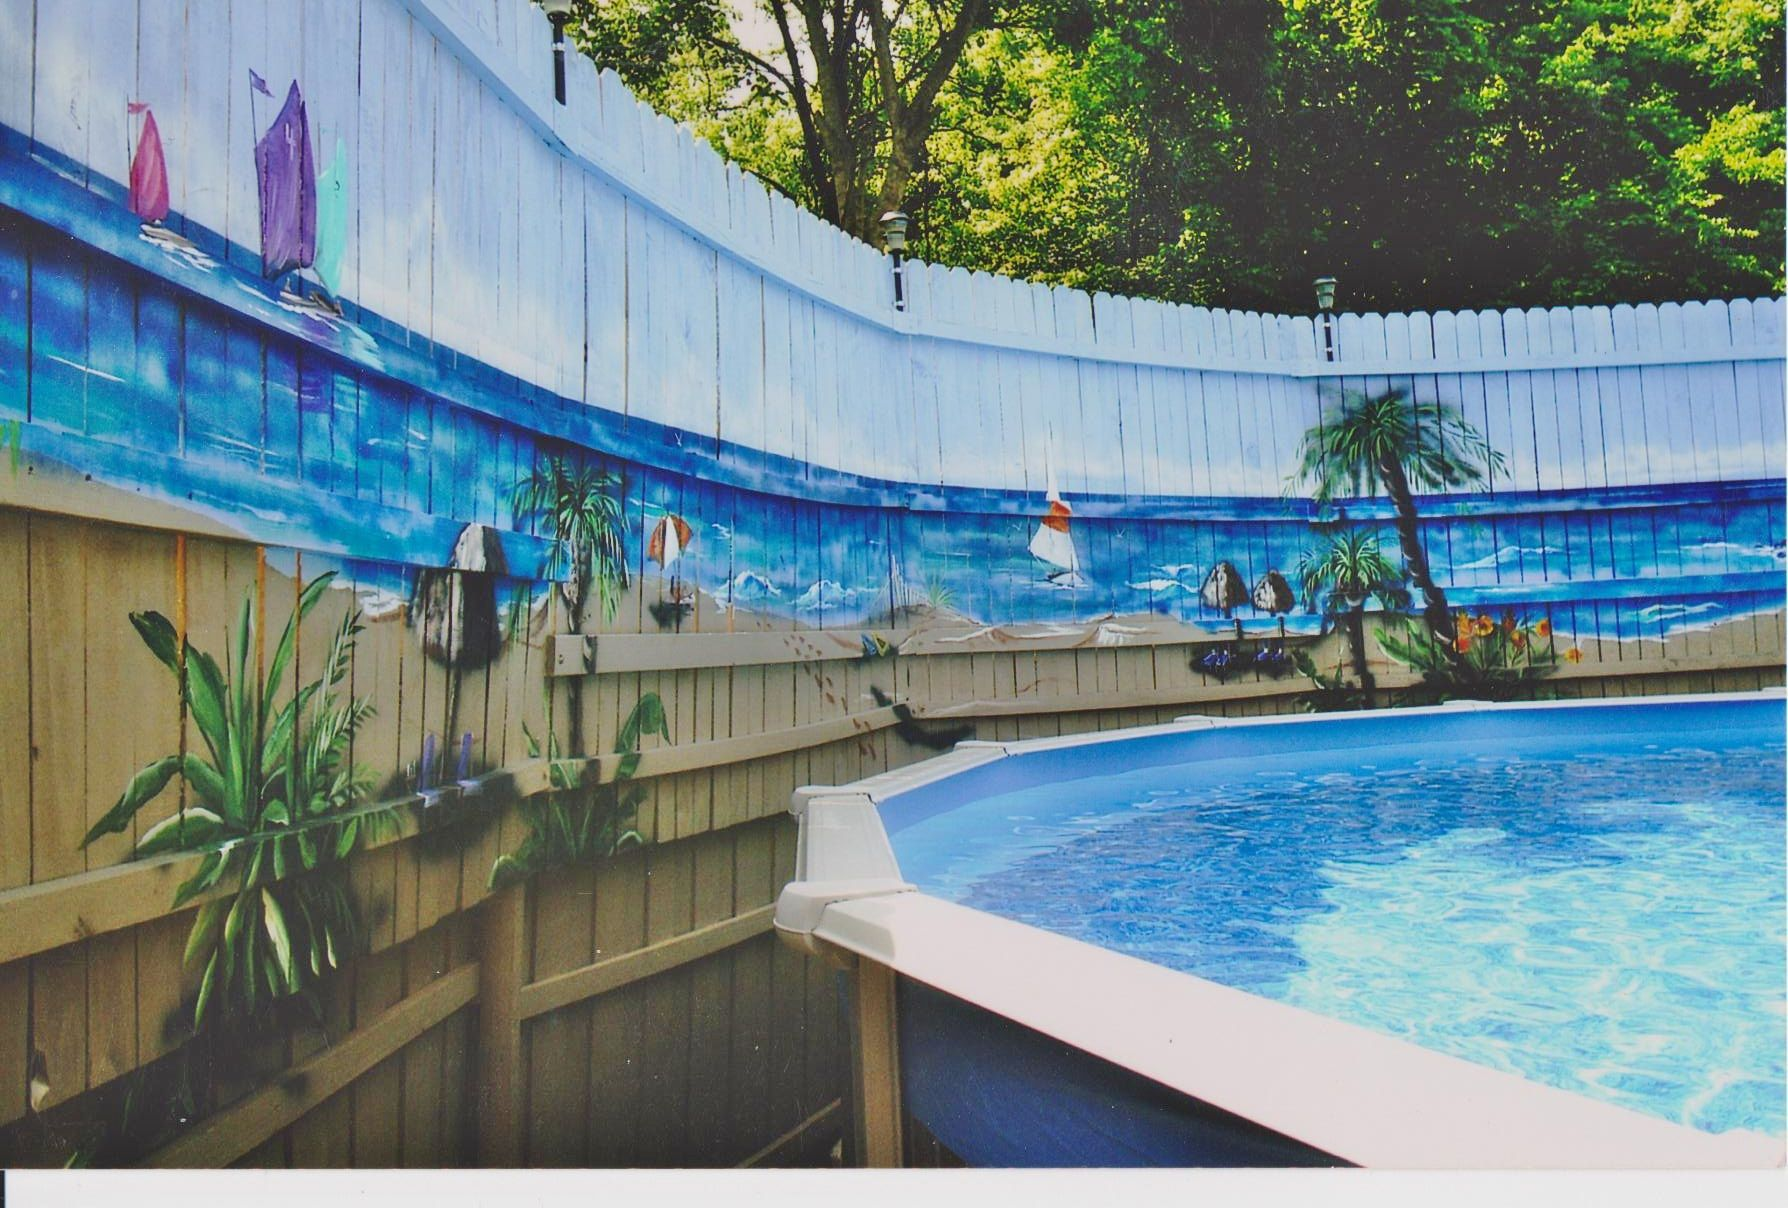 I Painted The Fence Like A Beach Murals For Inside And Out In 2019